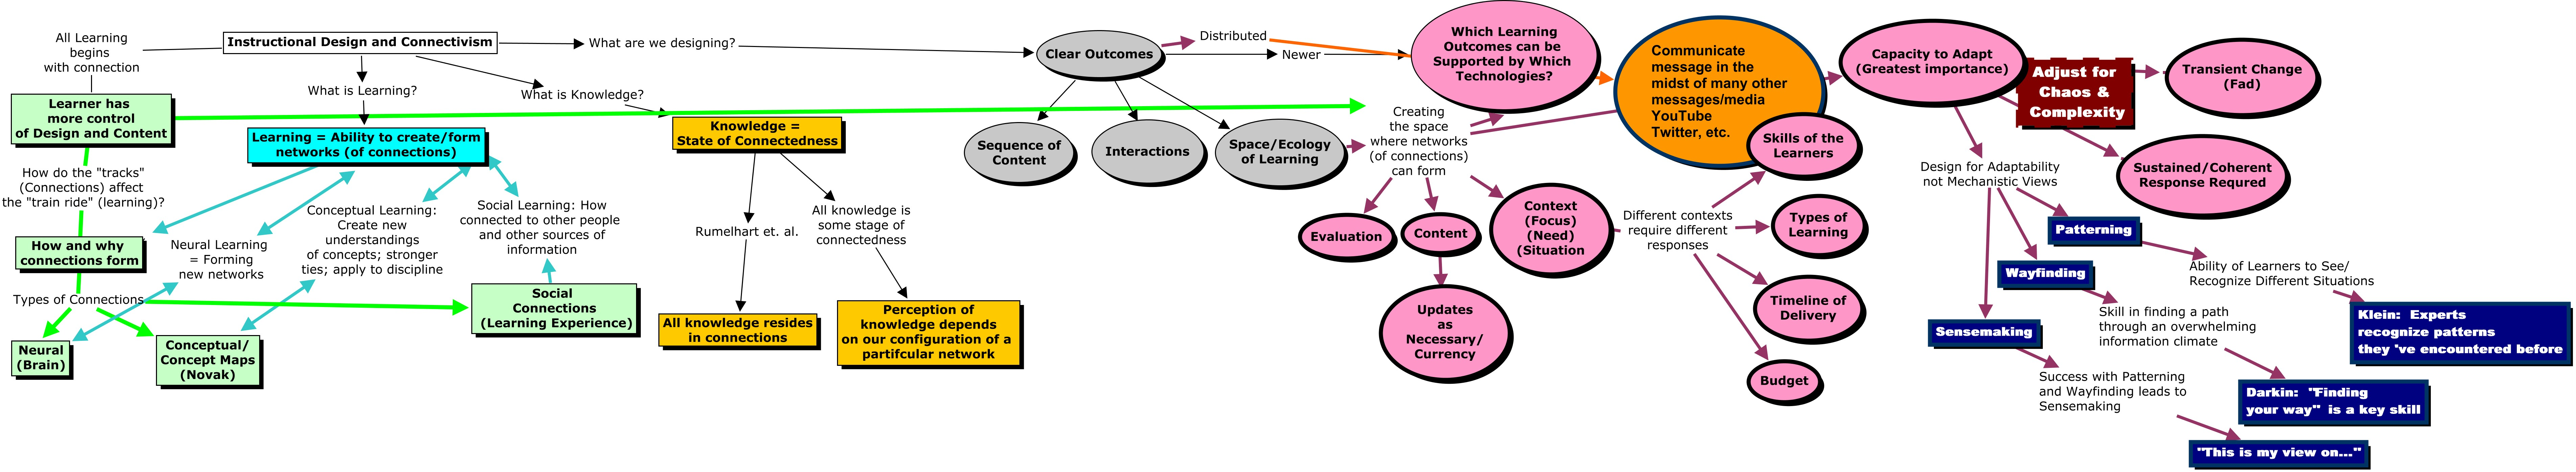 Instructional Design Certificate Online Images Certificate Design